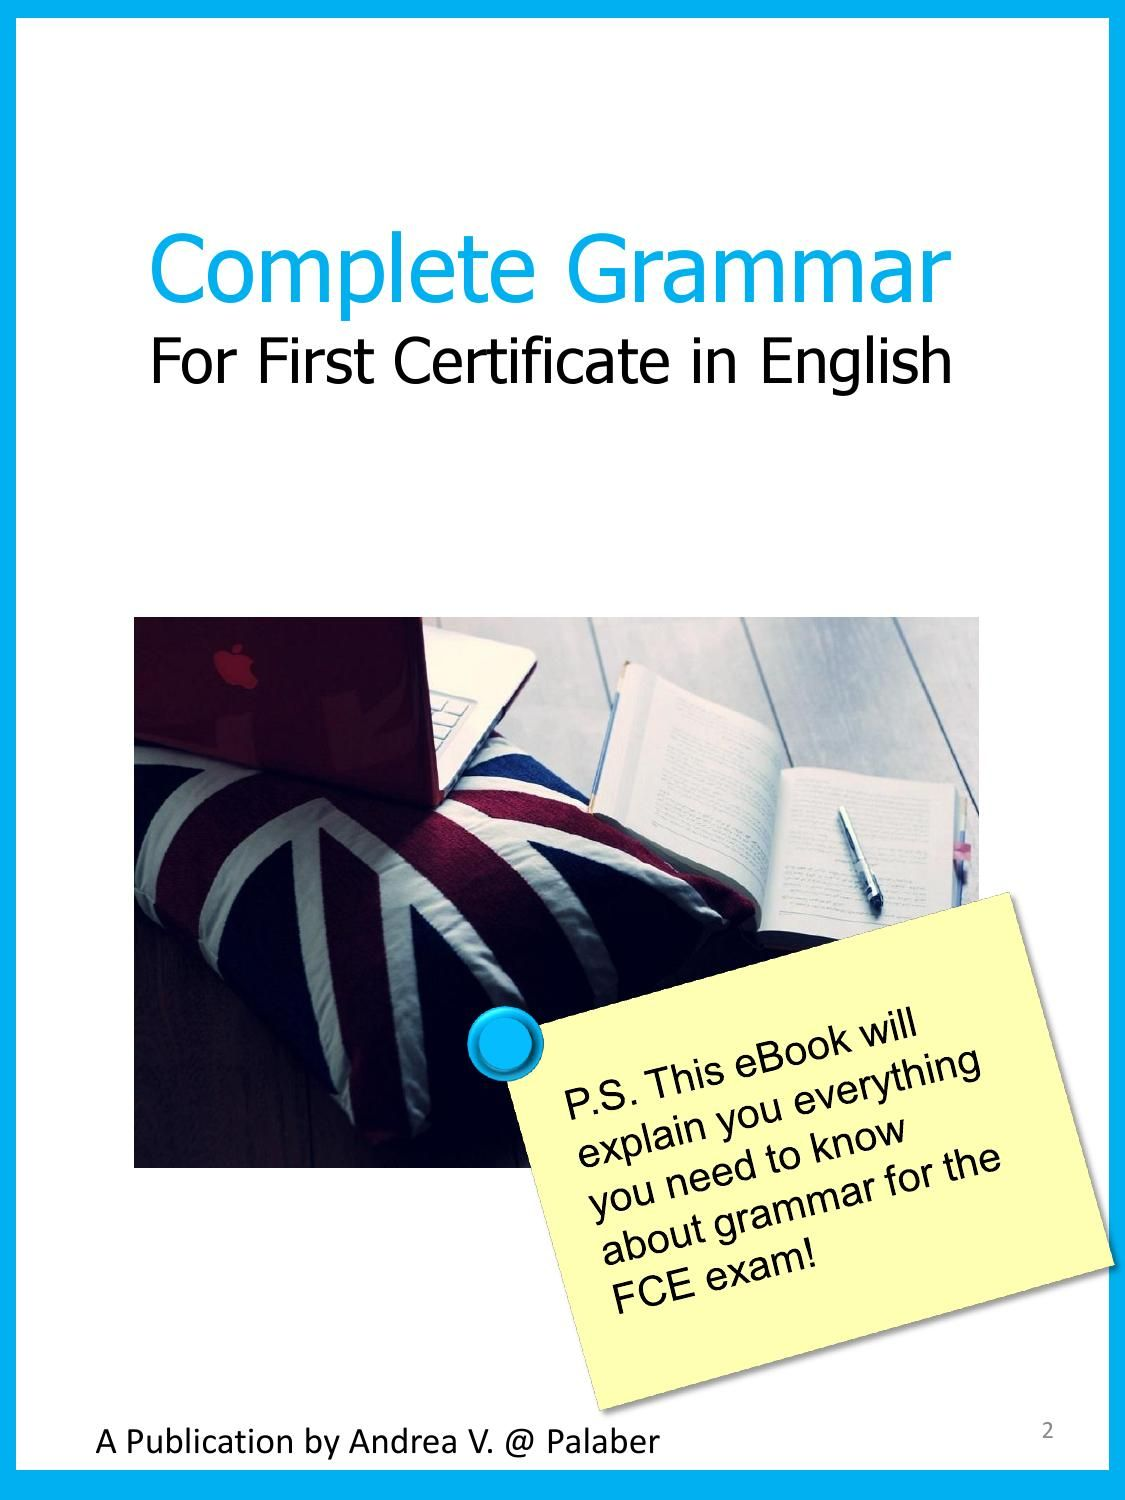 Libros B2 Ingles Pdf Complete Grammar For First Certificate In English English